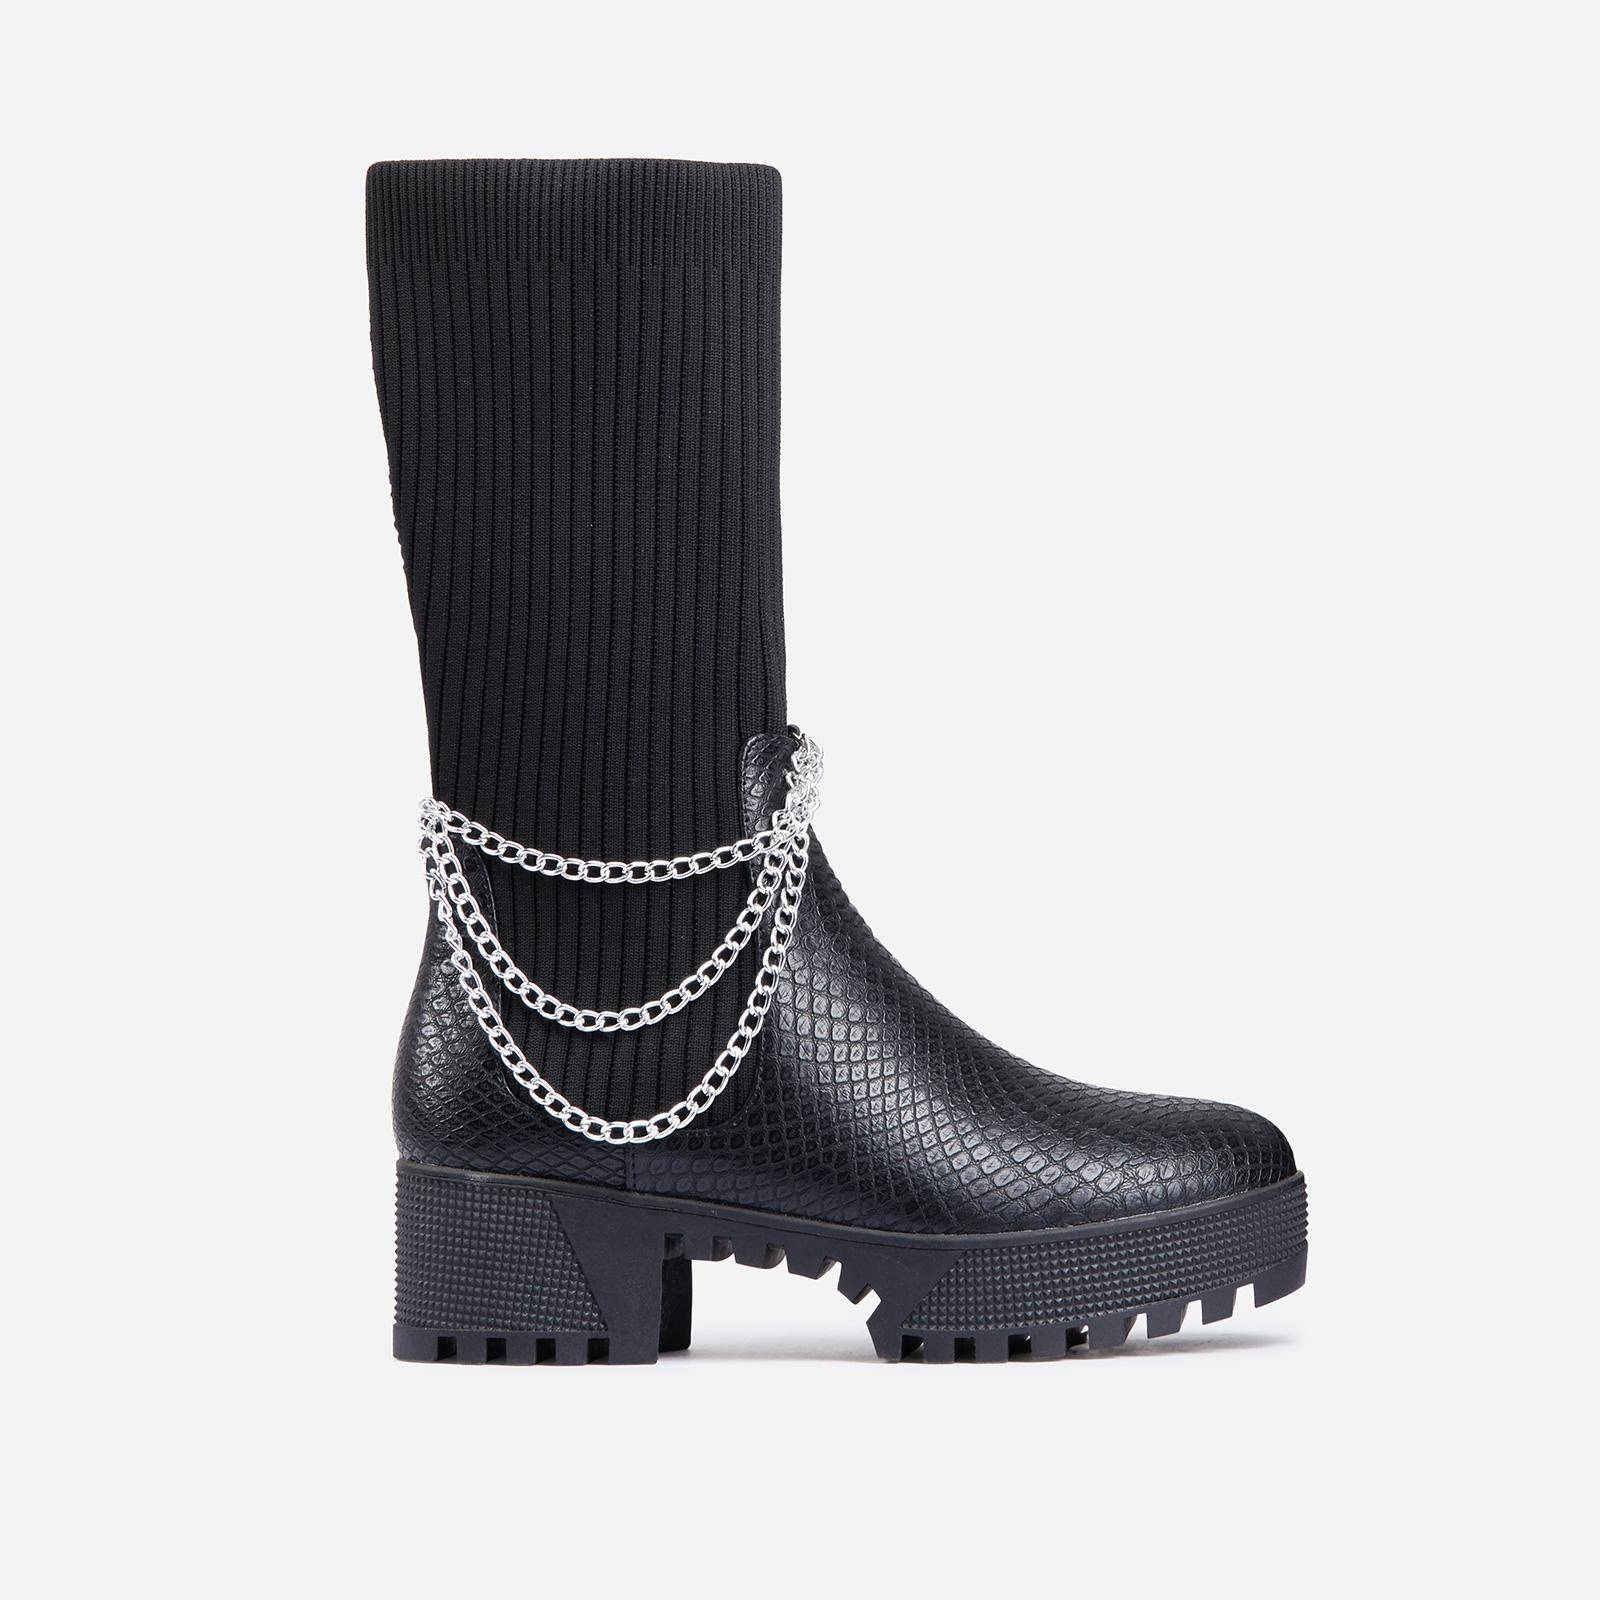 EGO Hint Chain Detail Ribbed Mid Calf Chunky Sole Ankle Bike Boot In Black Snake Print Faux Leather, Black  - female - Size: 5